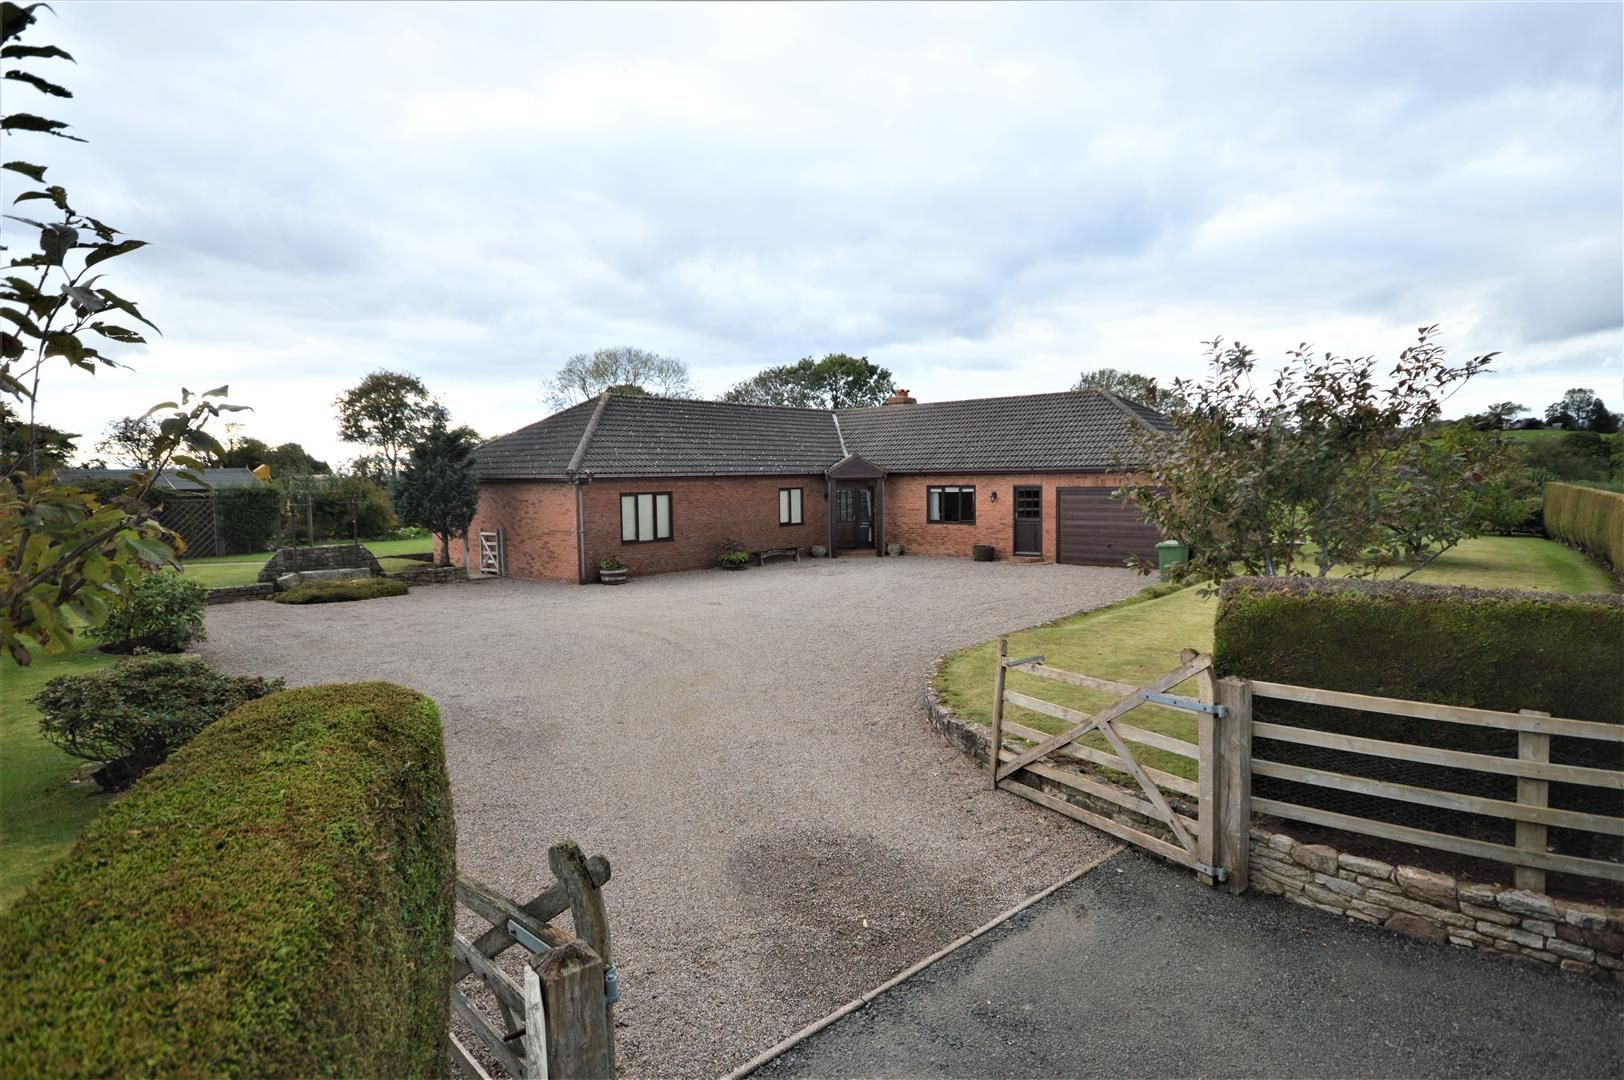 4 bed detached bungalow for sale in Little Cowarne, HR7